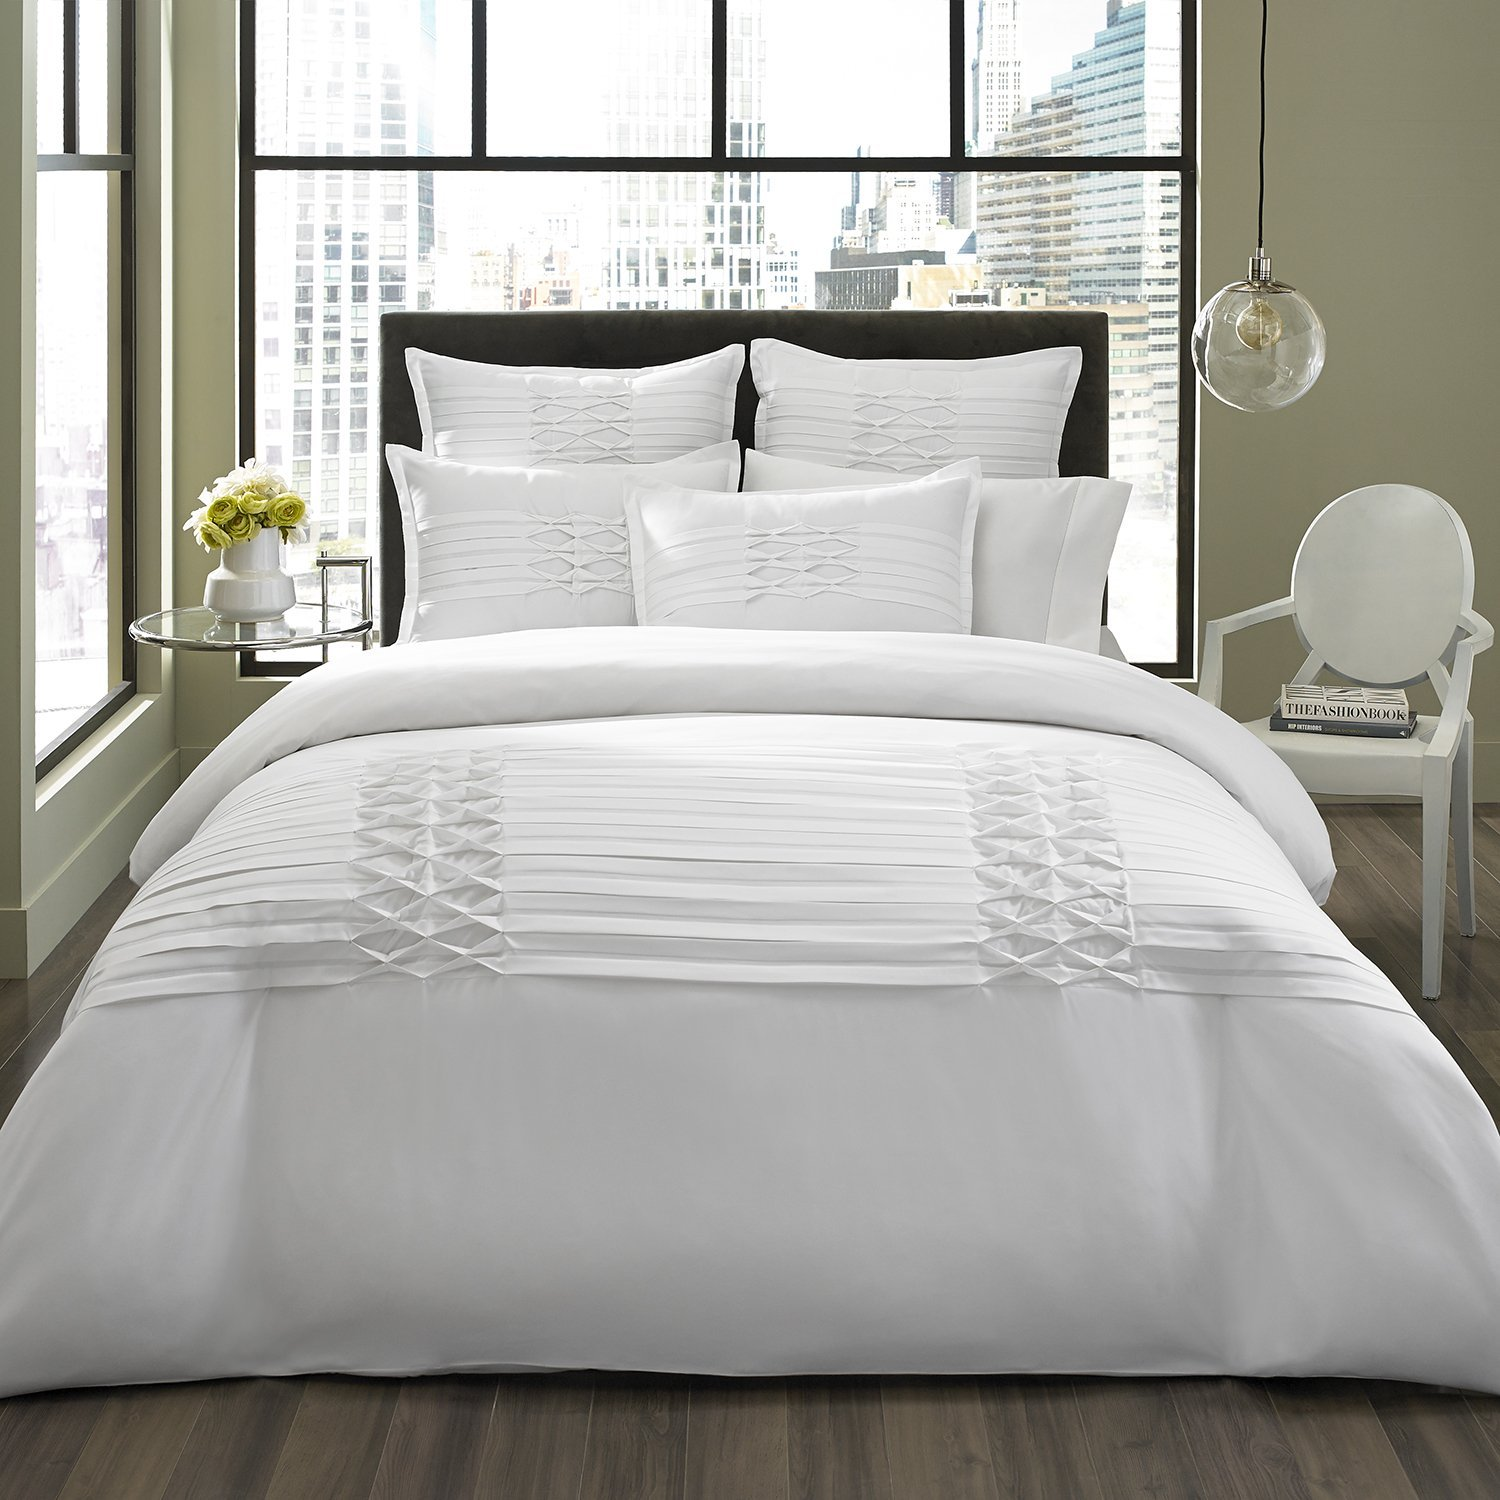 City scene triple diamond duvet cover set.jpg